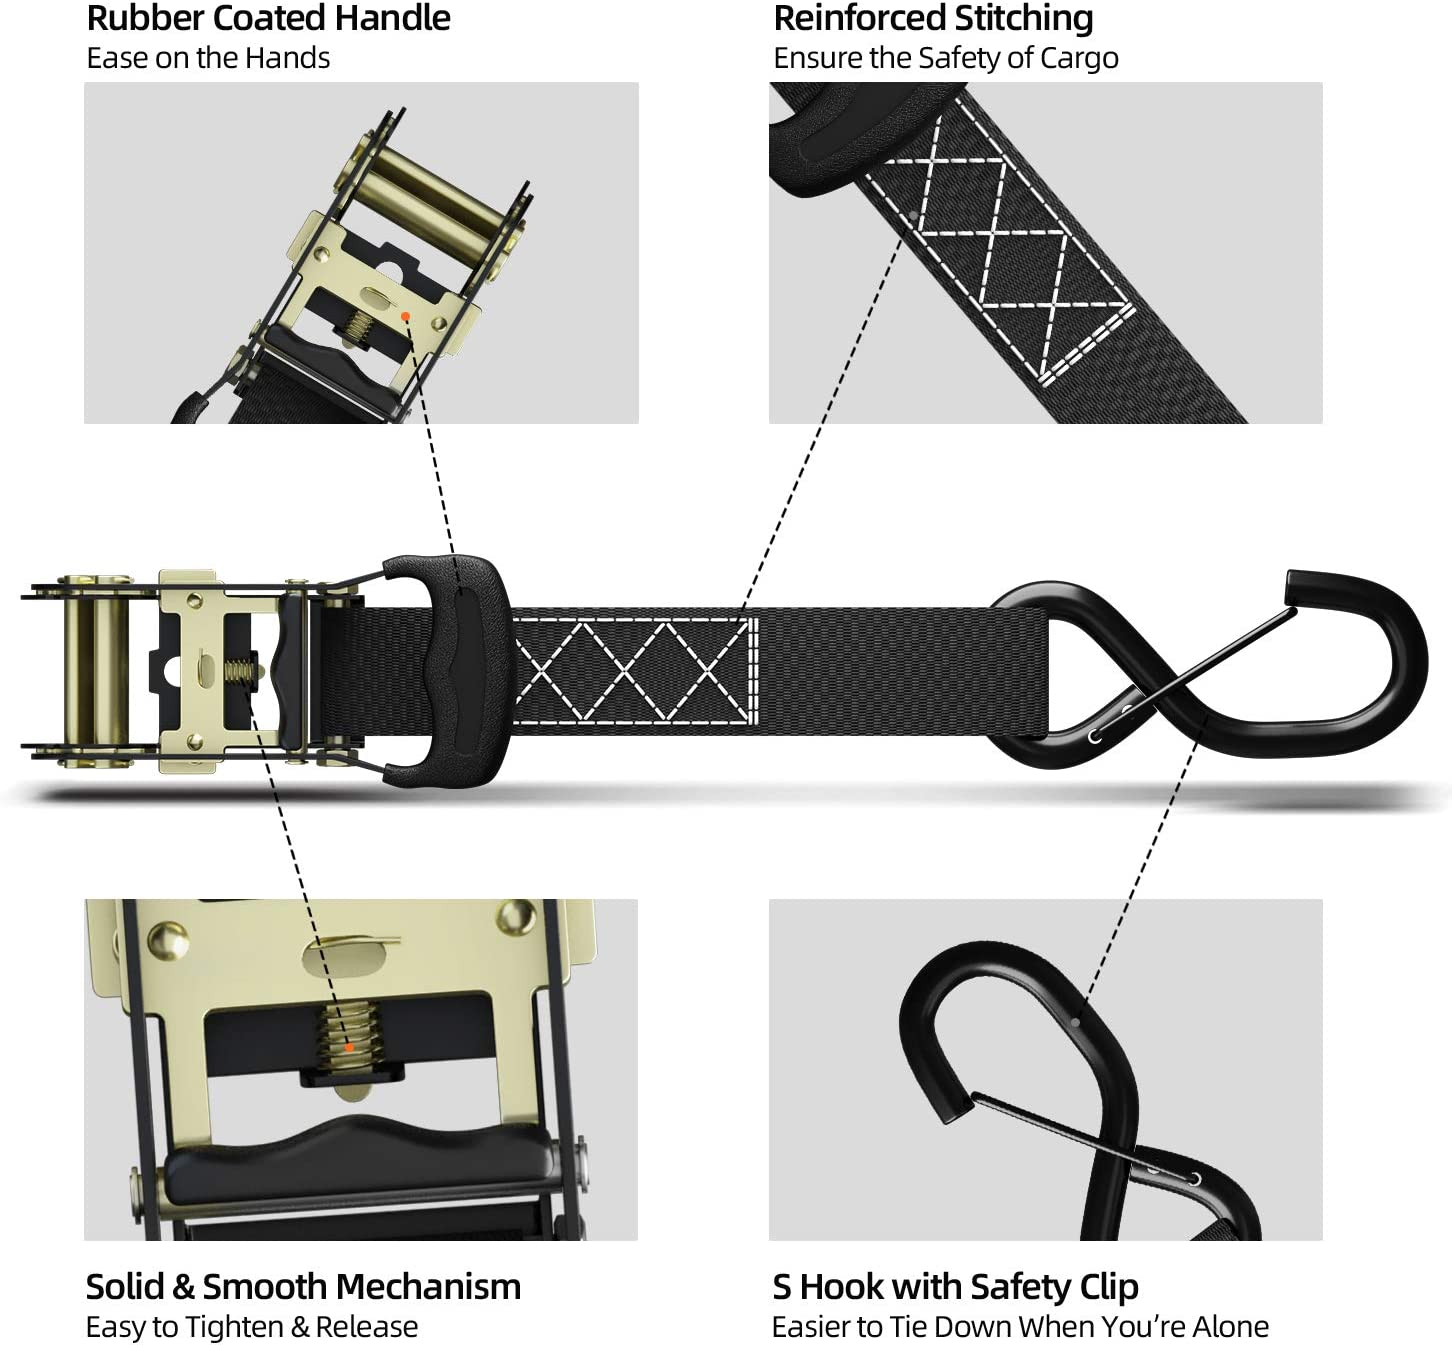 Ratchet Tie Down Straps with Safety Clip 4-Pack 1.5 x 15 /& 4 Soft Loops Ohuhu Ratchet Tie Downs Logistic Cargo Straps for Moving Appliances 1100 lbs Load Cap 3300 lbs Breaking Limit Motorcycle